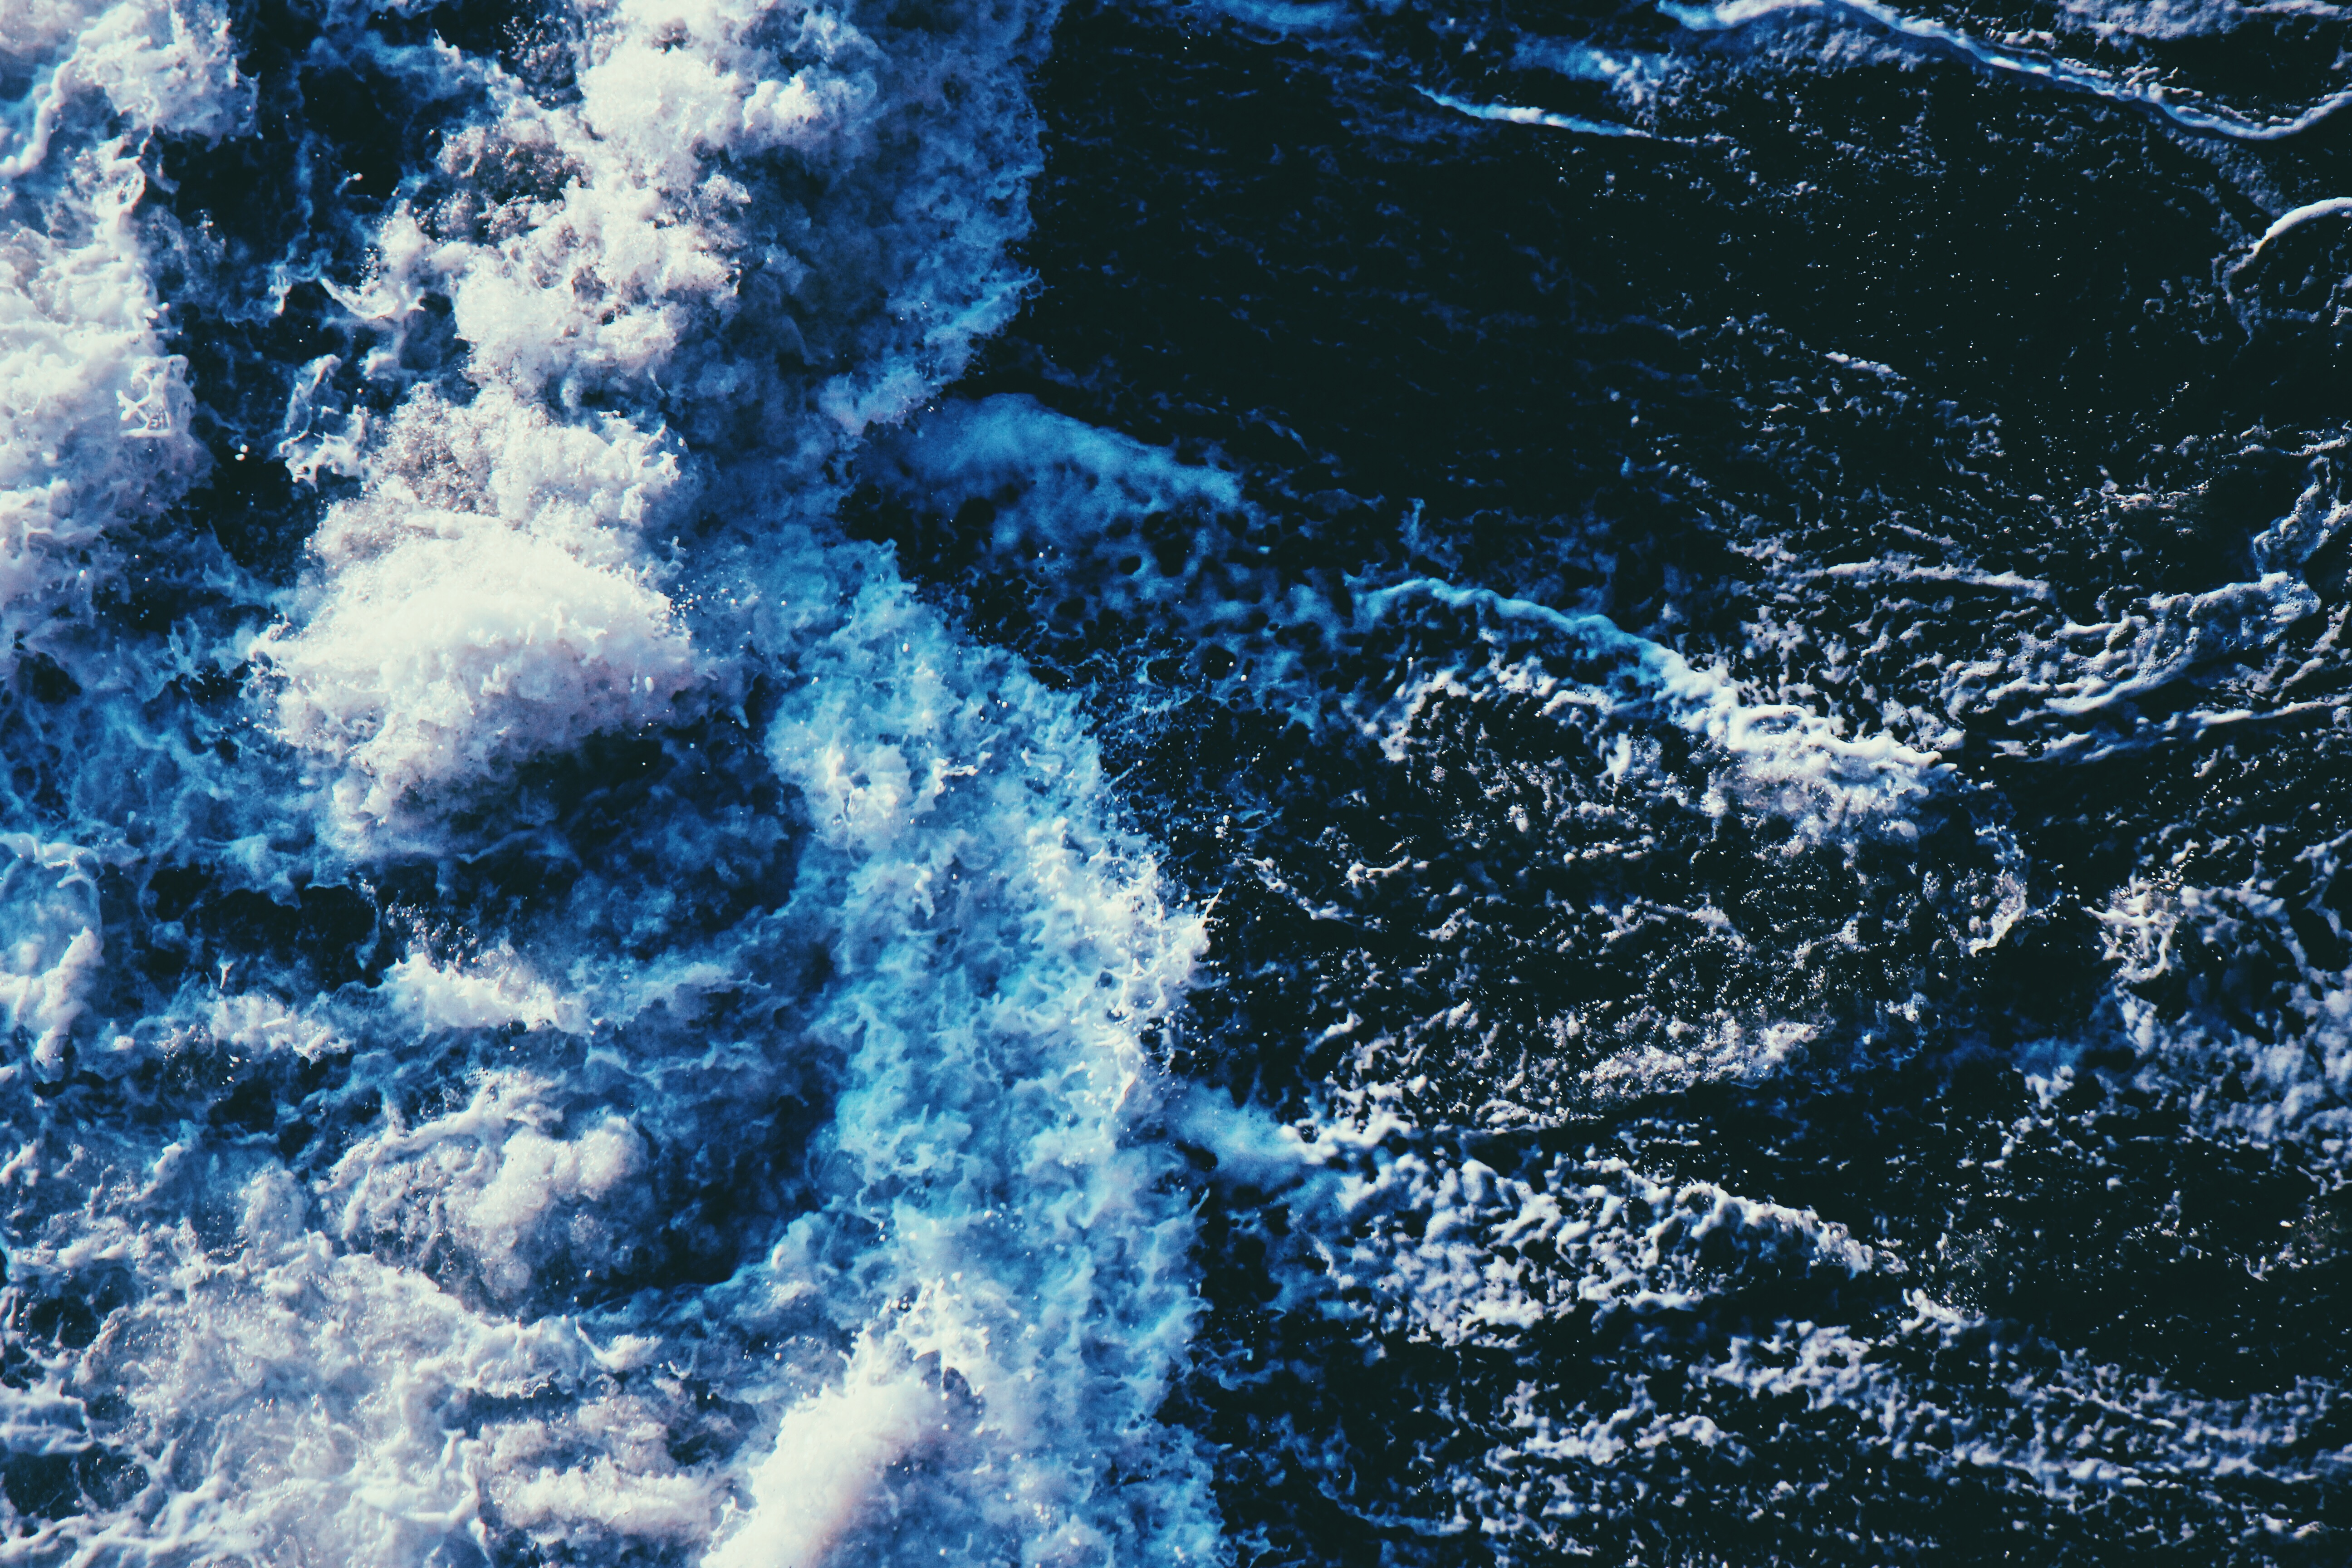 152477 download wallpaper Nature, Spray, Sea, Surf, Waves screensavers and pictures for free